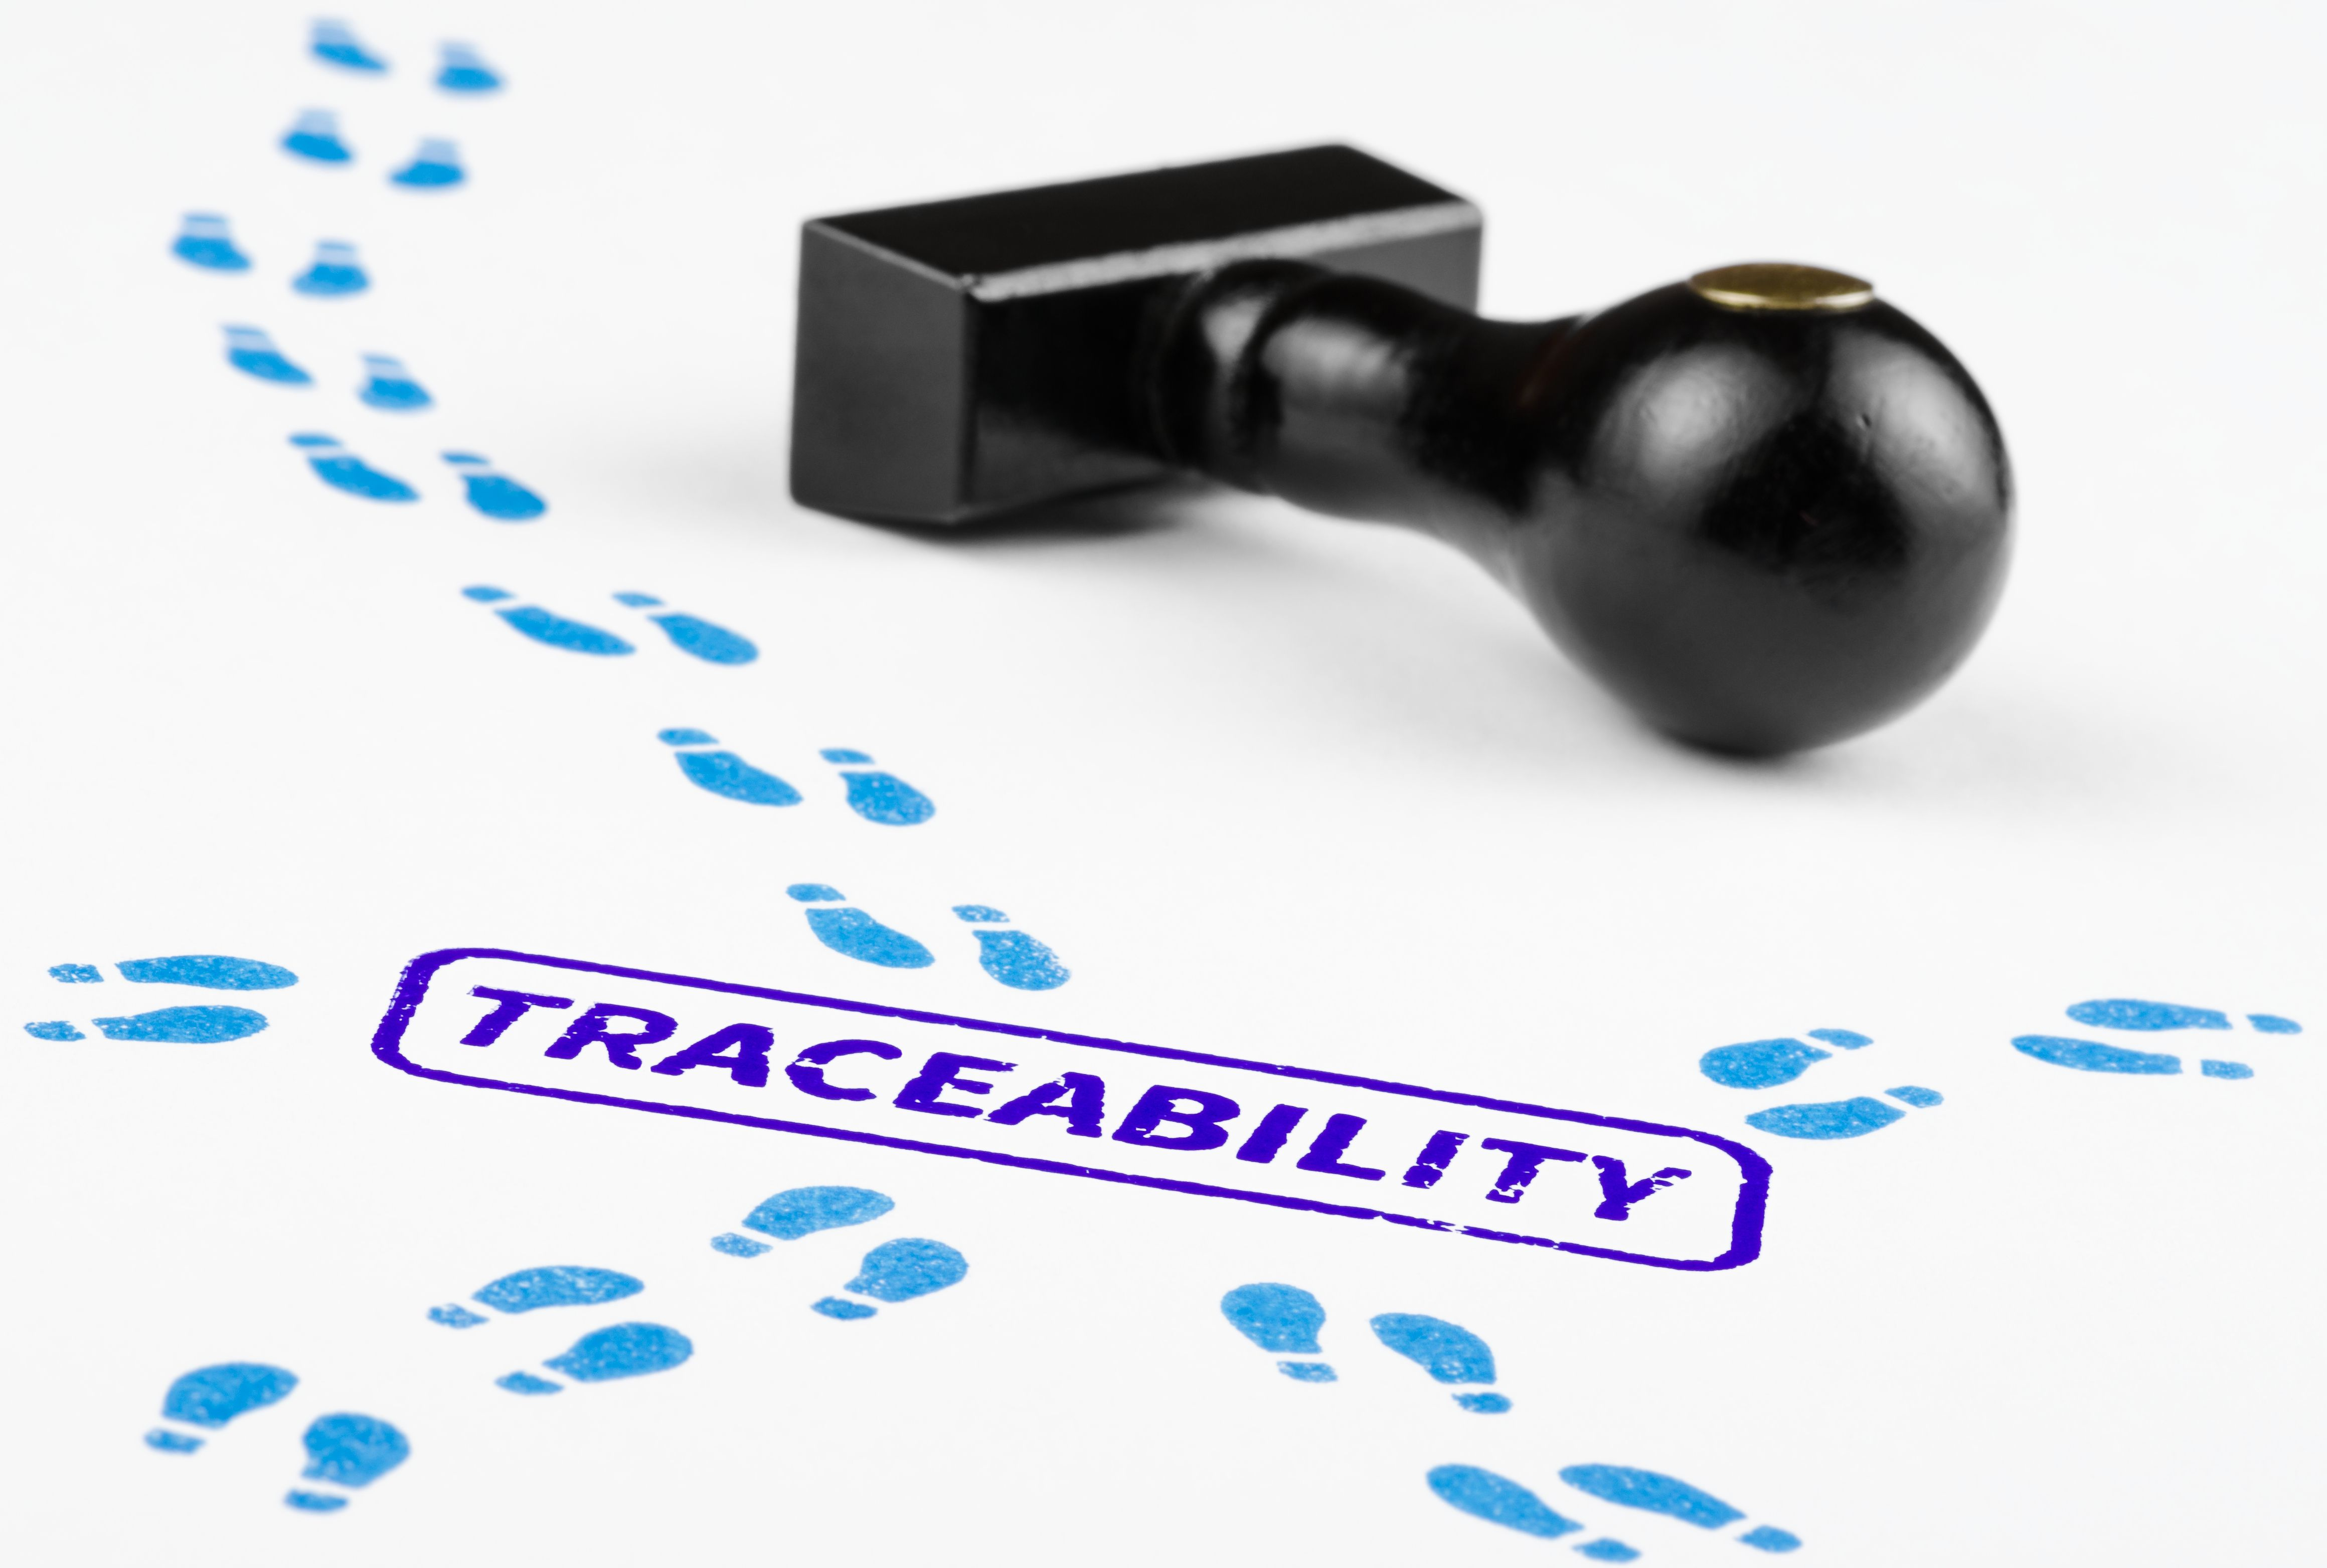 Laser mark your PCB boards to make traceability possible